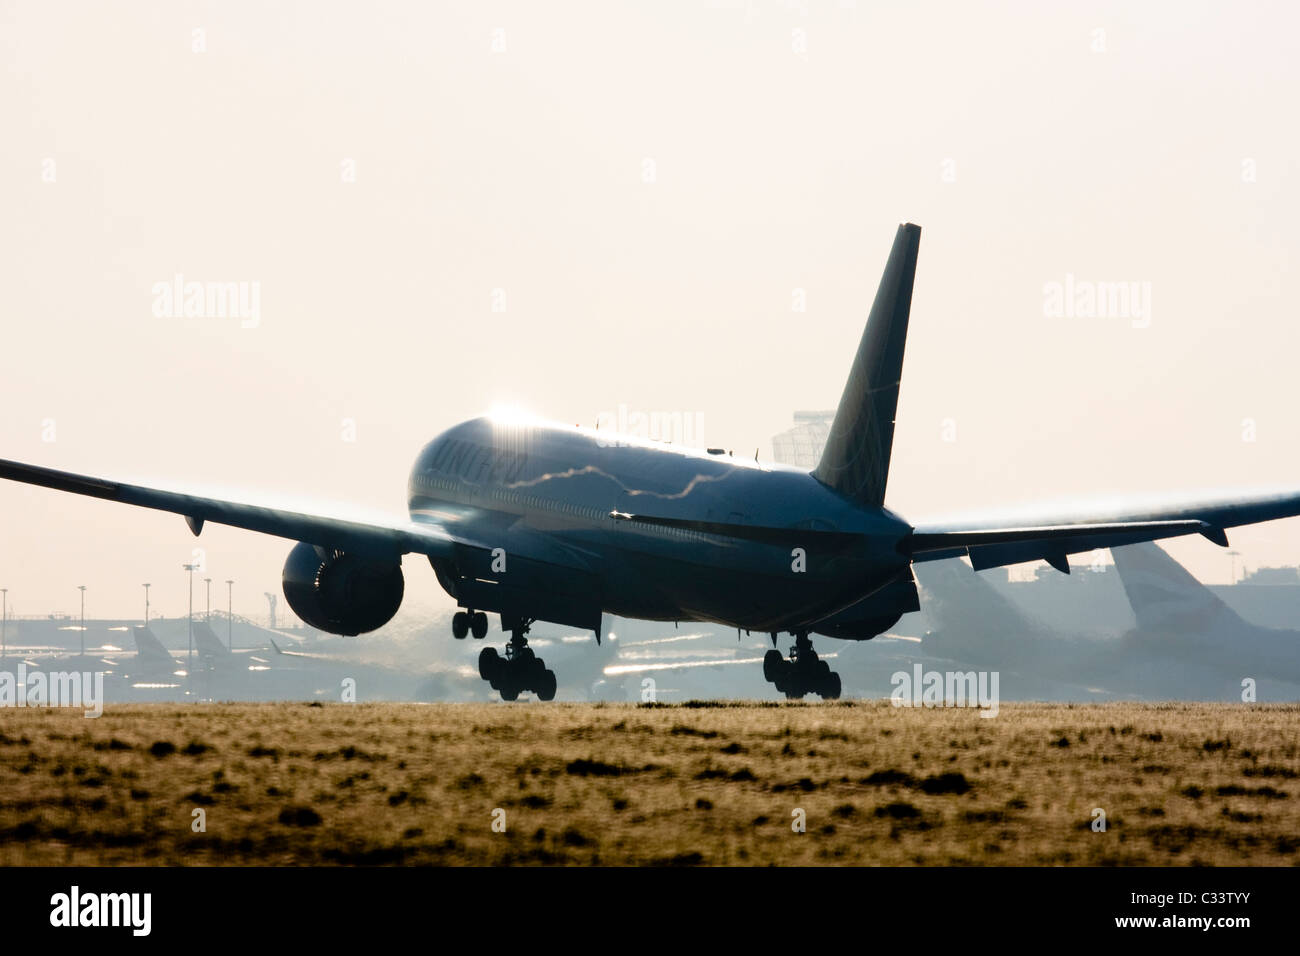 Commercial airliner landing at London Heathrow with condensation trails forming over the wings. Stock Photo